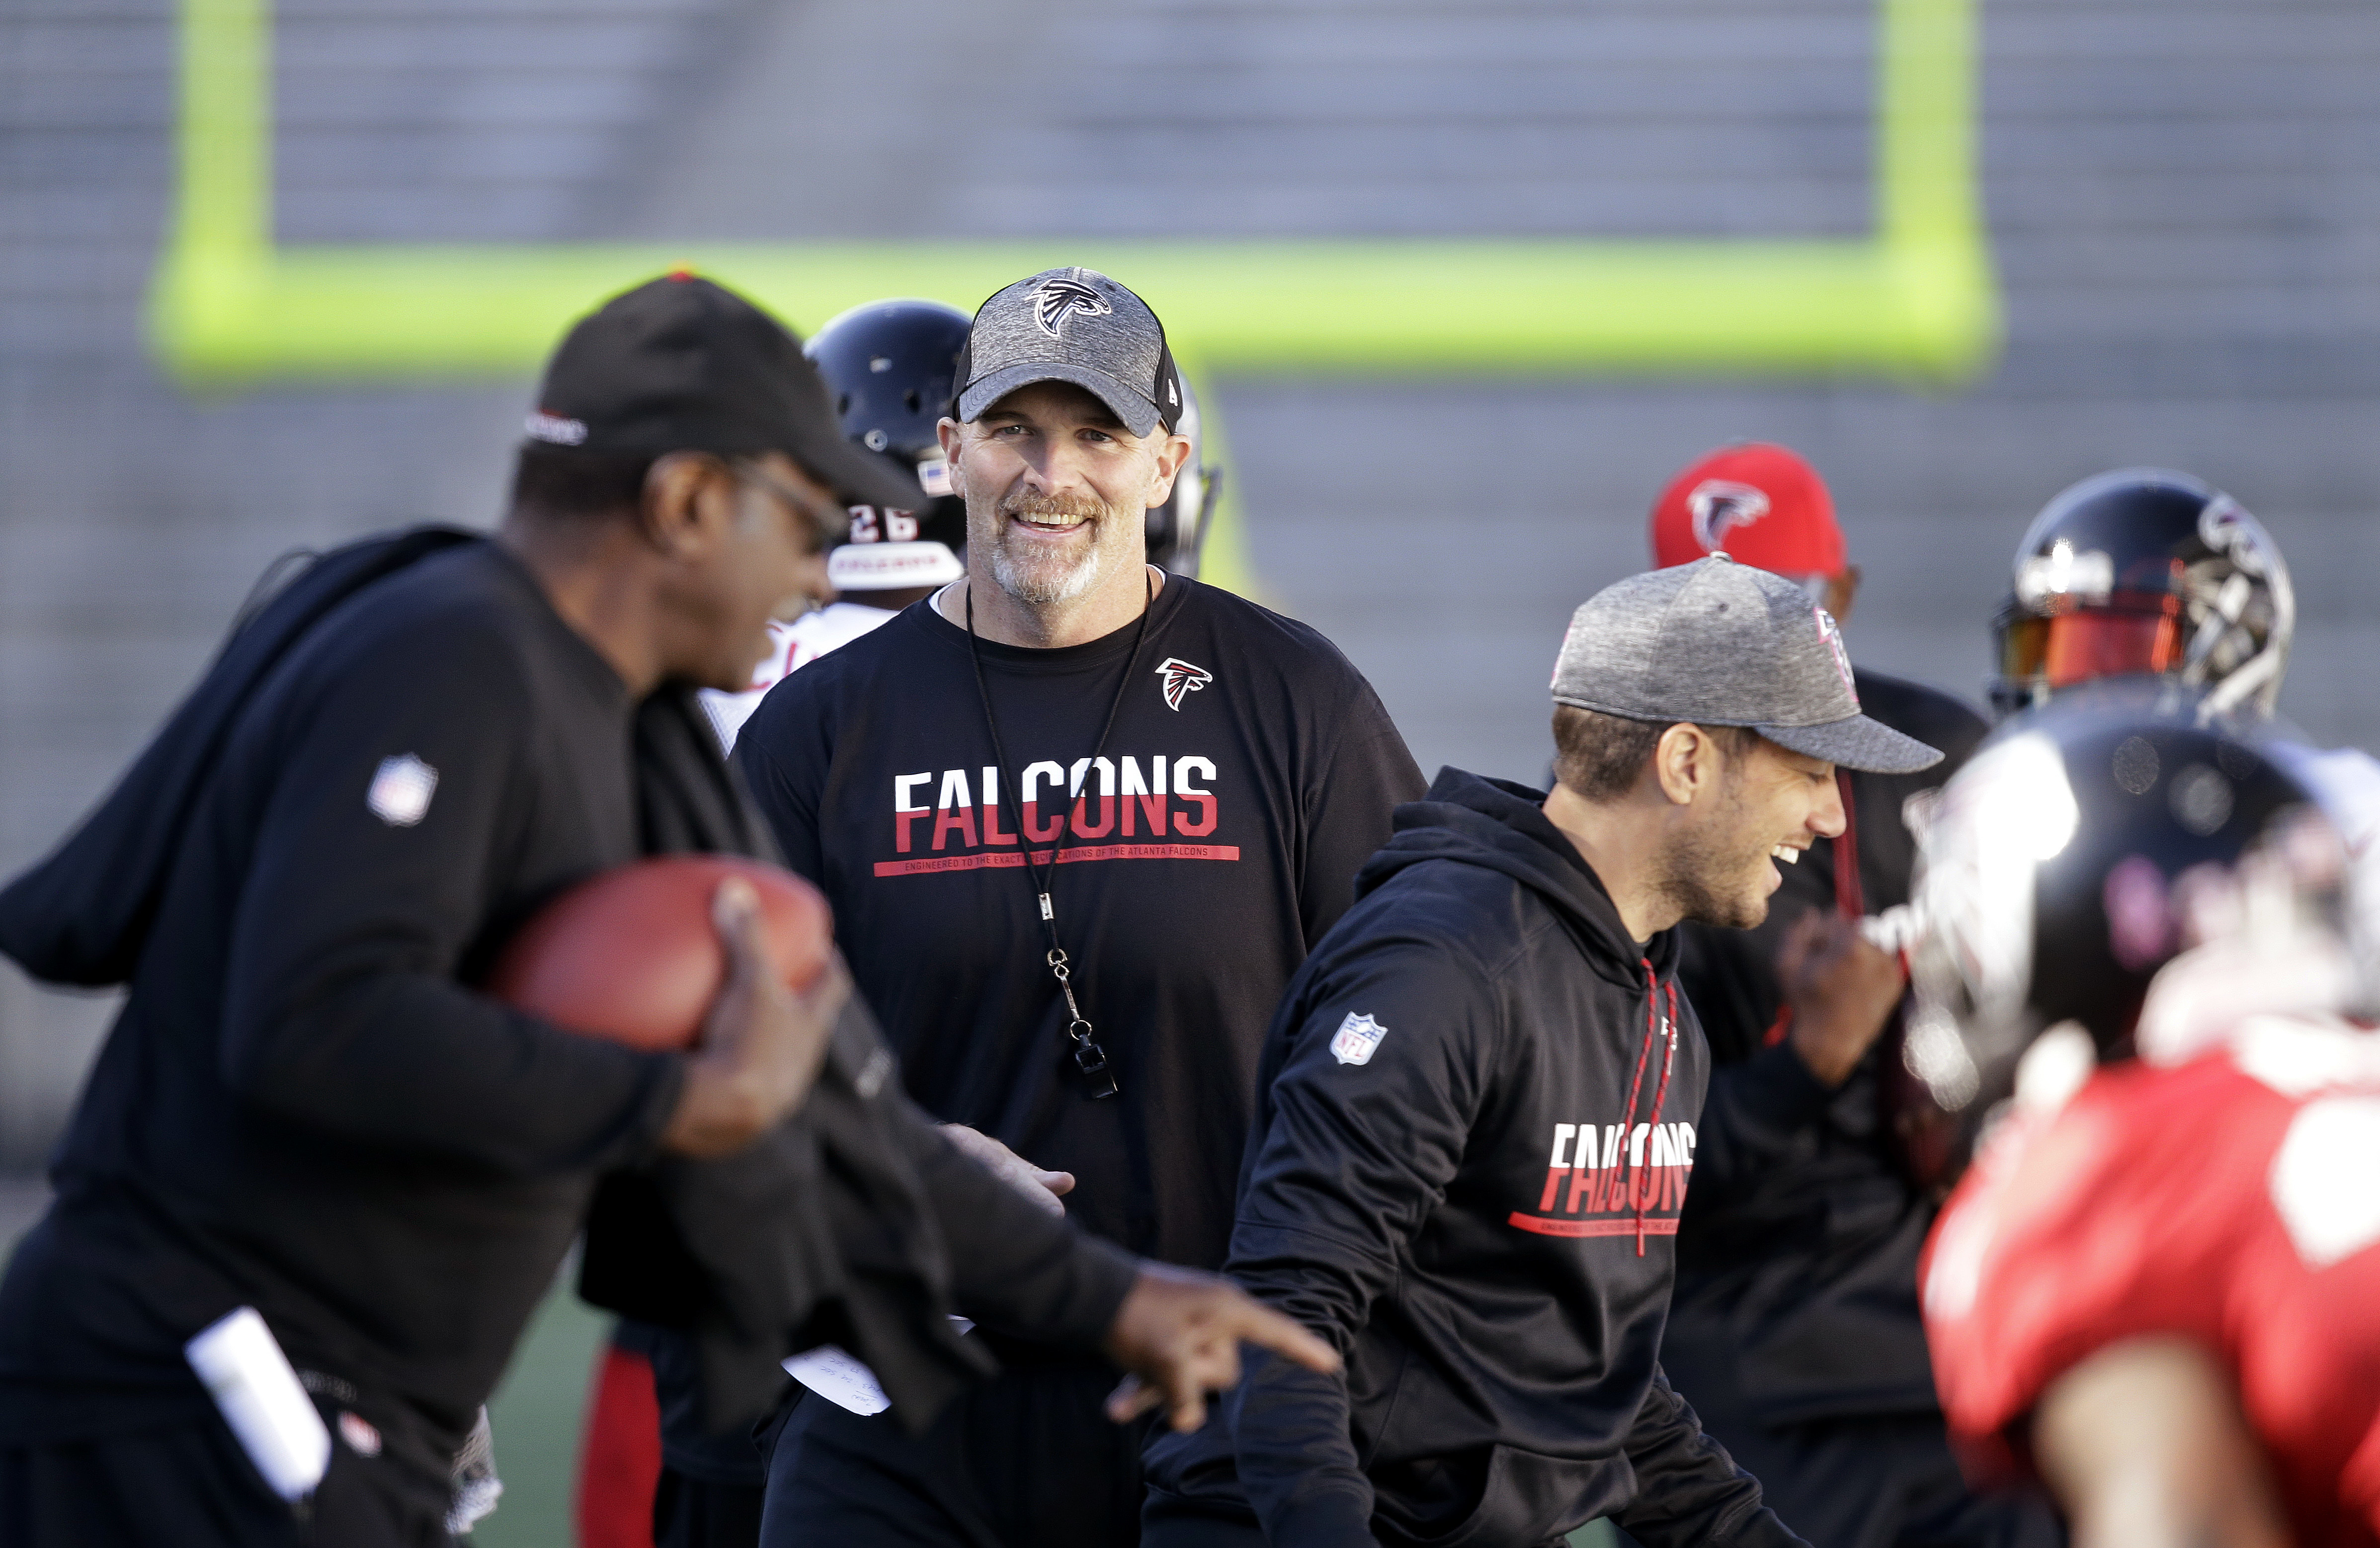 Atlanta Falcons coach Dan Quinn smiles as he watches the team practice at the University of Washington on Wednesday, Oct. 12, 2016, in Seattle. Rather than head home, the team traveled directly to Seattle after its football game Sunday in Denver, ahead of